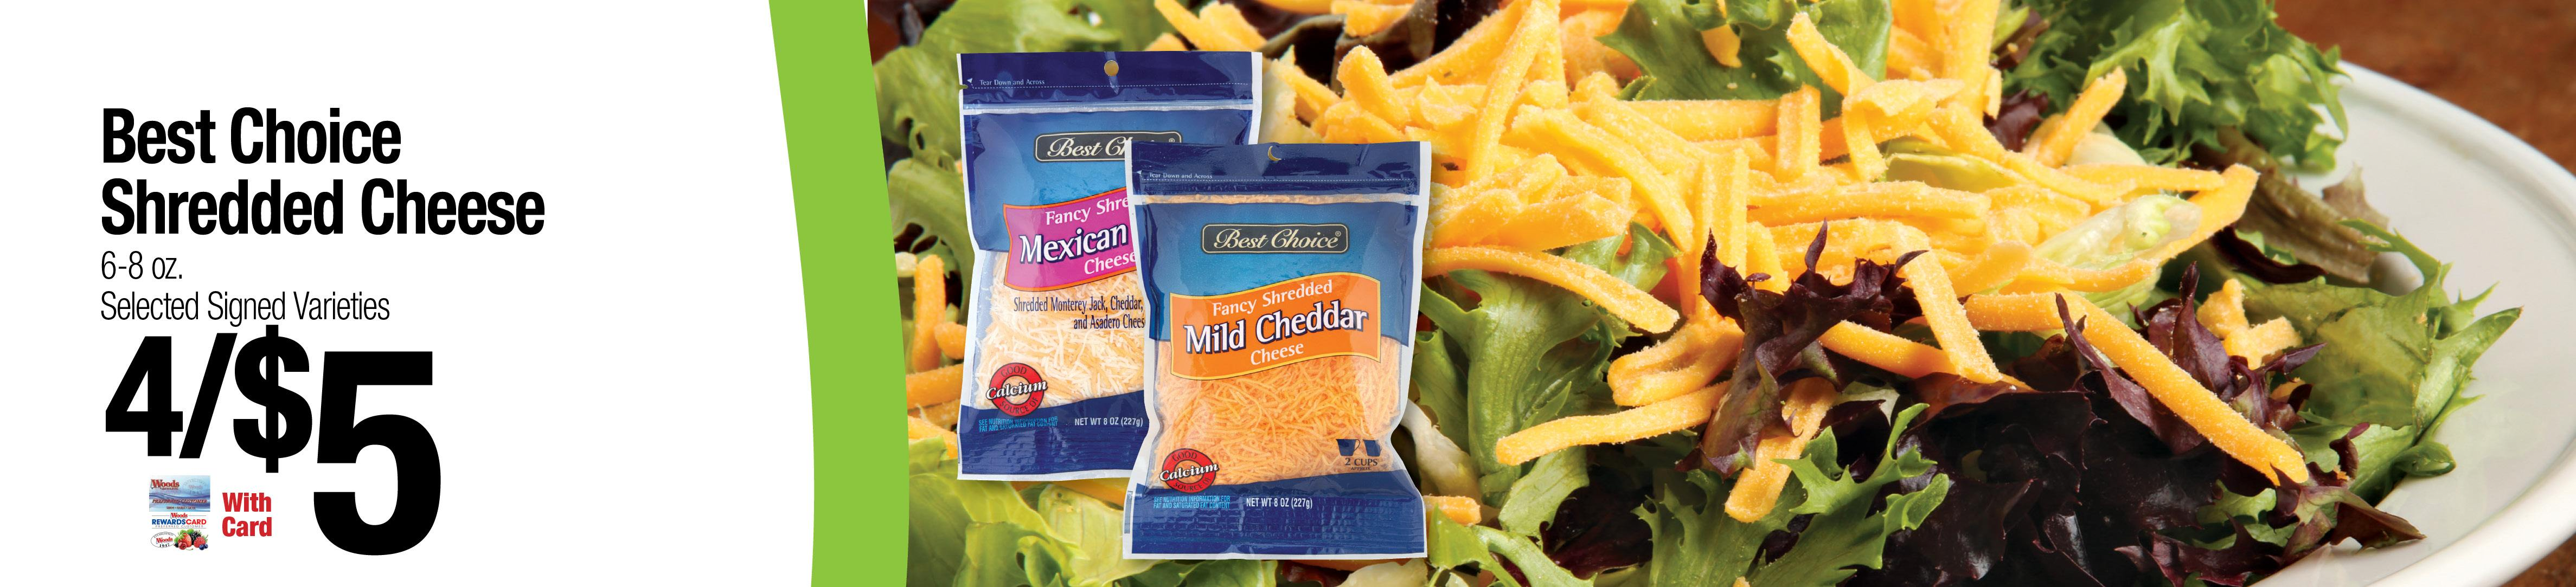 Best Choice Shredded Cheese 6-8oz - 4/$5